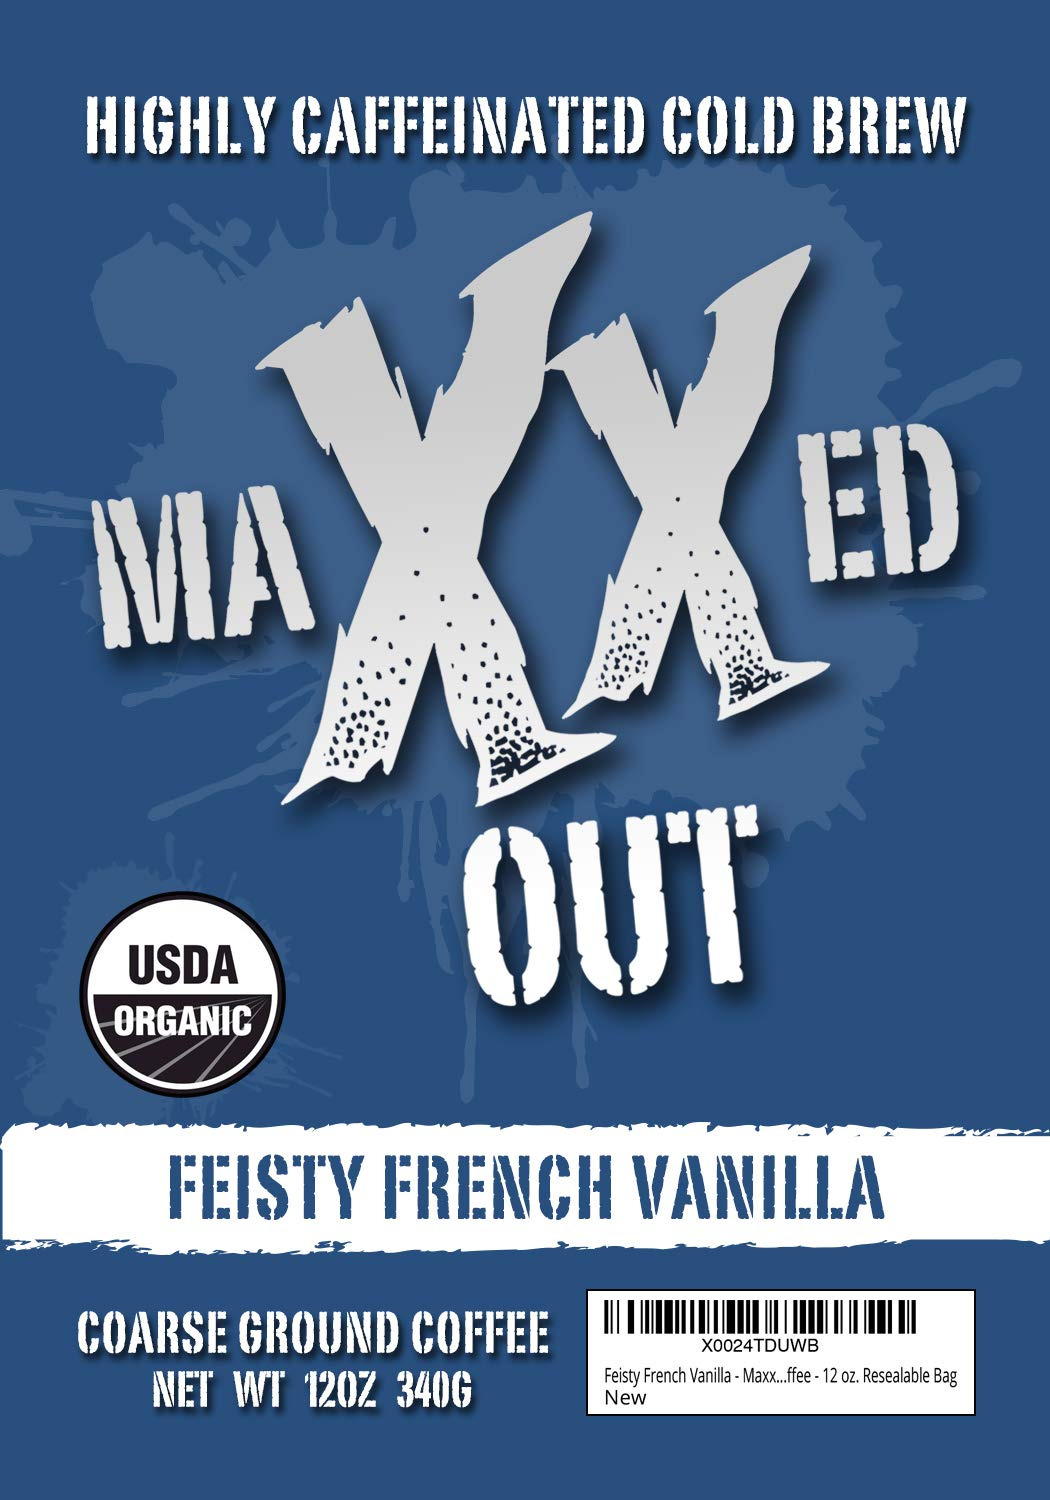 Feisty French Vanilla - Cold Brew Coffee - HIGHLY CAFFEINATED - USDA Organic - Coarse Ground - Maxxed Out - 12 oz. Resealable Bag